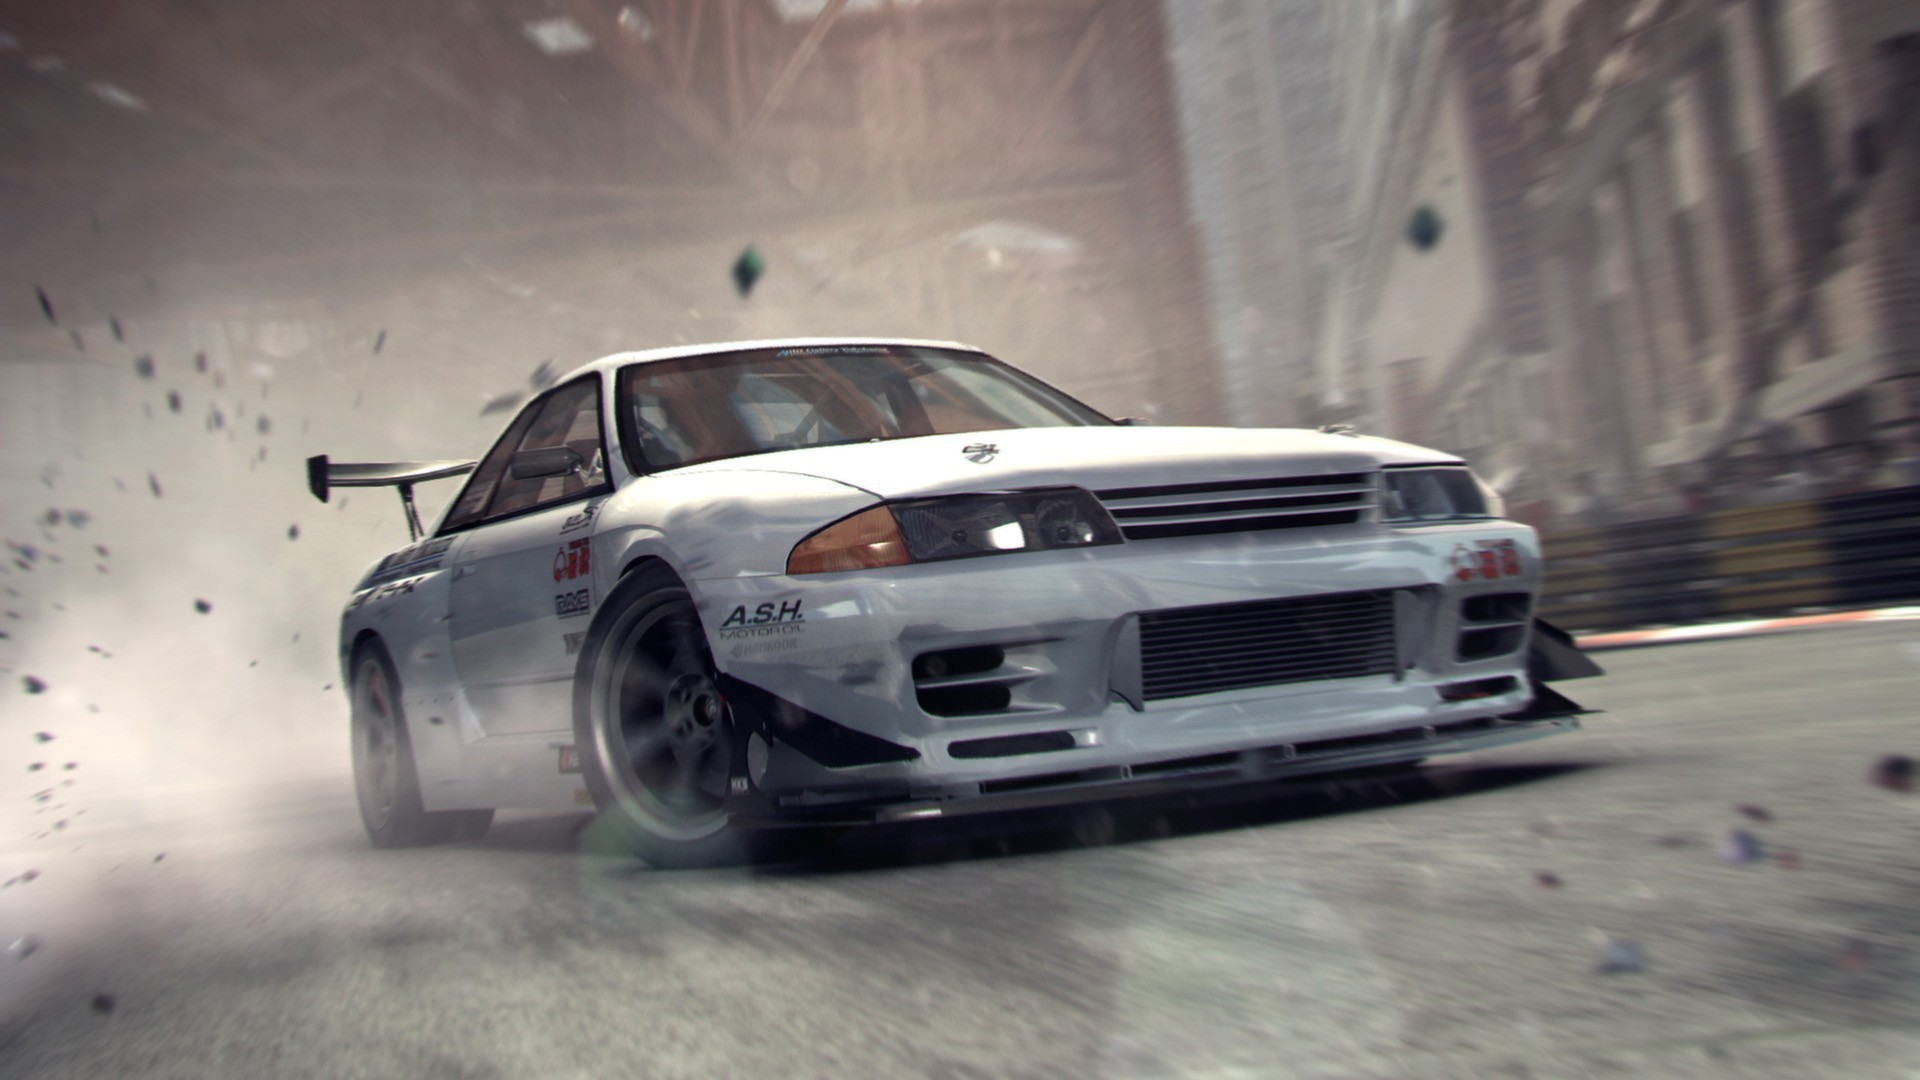 Nissan Skyline R JDM Godzilla Wallpapers HD Desktop and | HD Wallpapers |  Pinterest | Nissan skyline, Nissan and Wallpaper